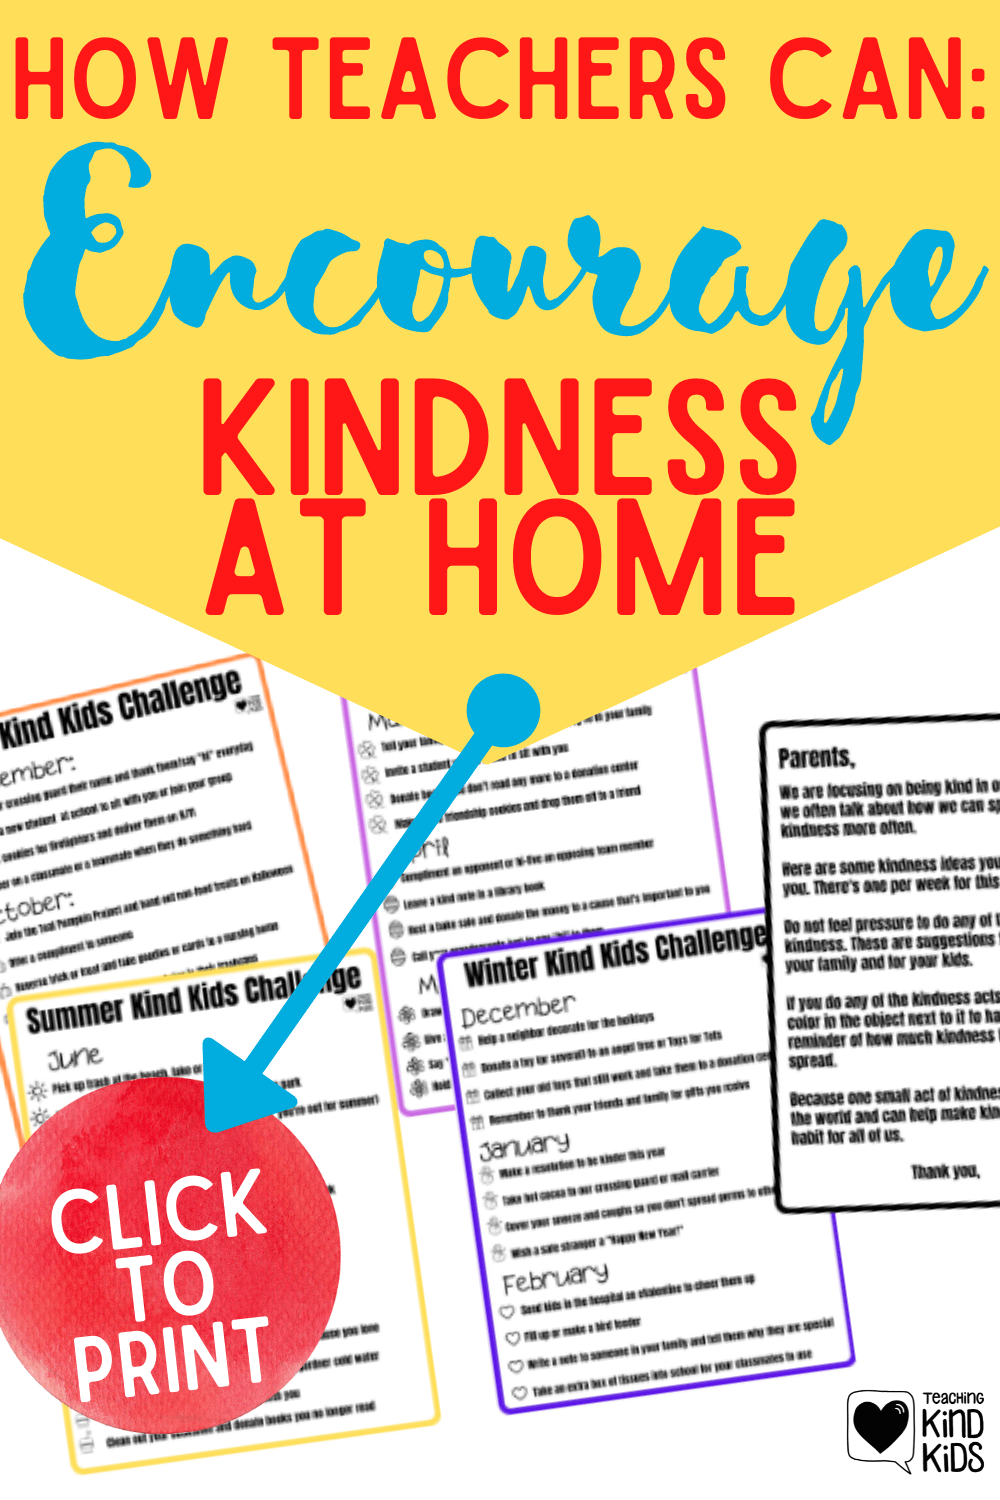 Encourage more kindness at home with your students and their families. Educators can send home these seasonal kindness printables and family connection letter to encourage families to speak and act with kindness together.